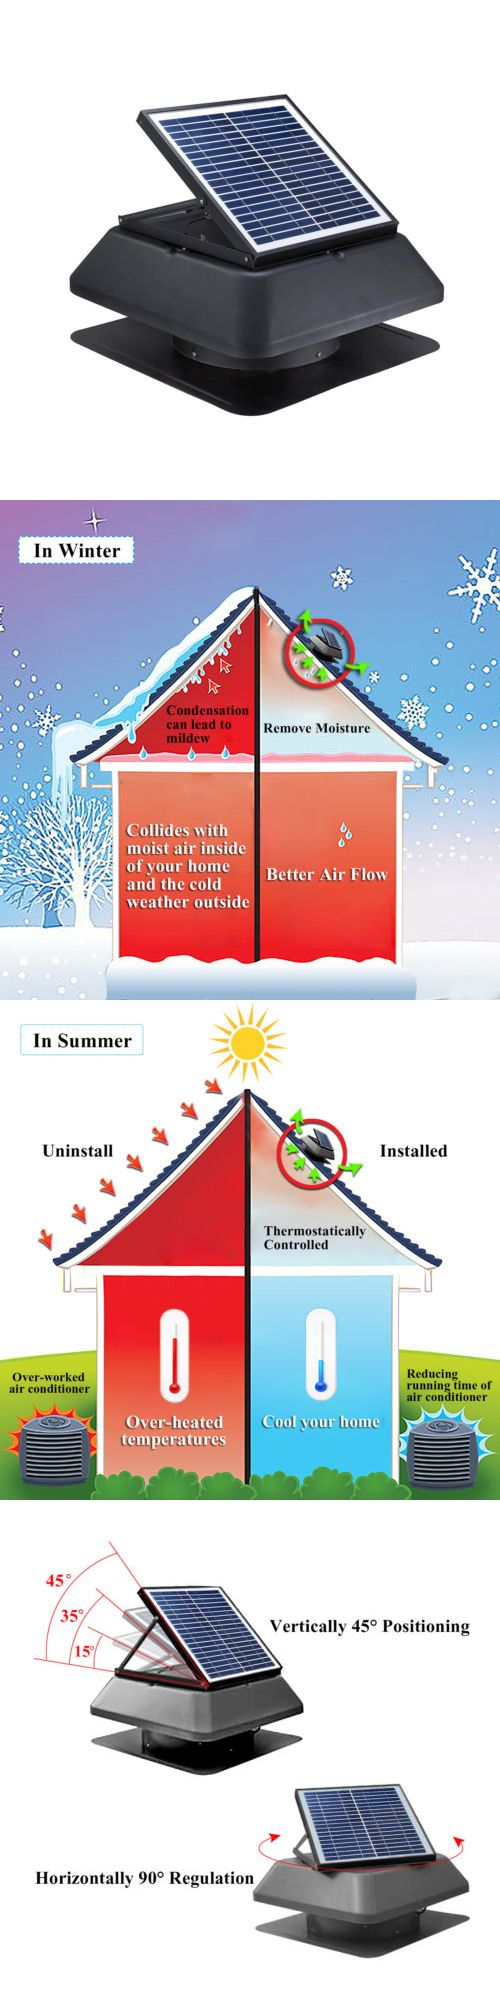 Solar star attic fan complaints - Other Home Heating And Cooling 20598 20w Solar Powered Attic Fan Roof Mount 1750 Cfm